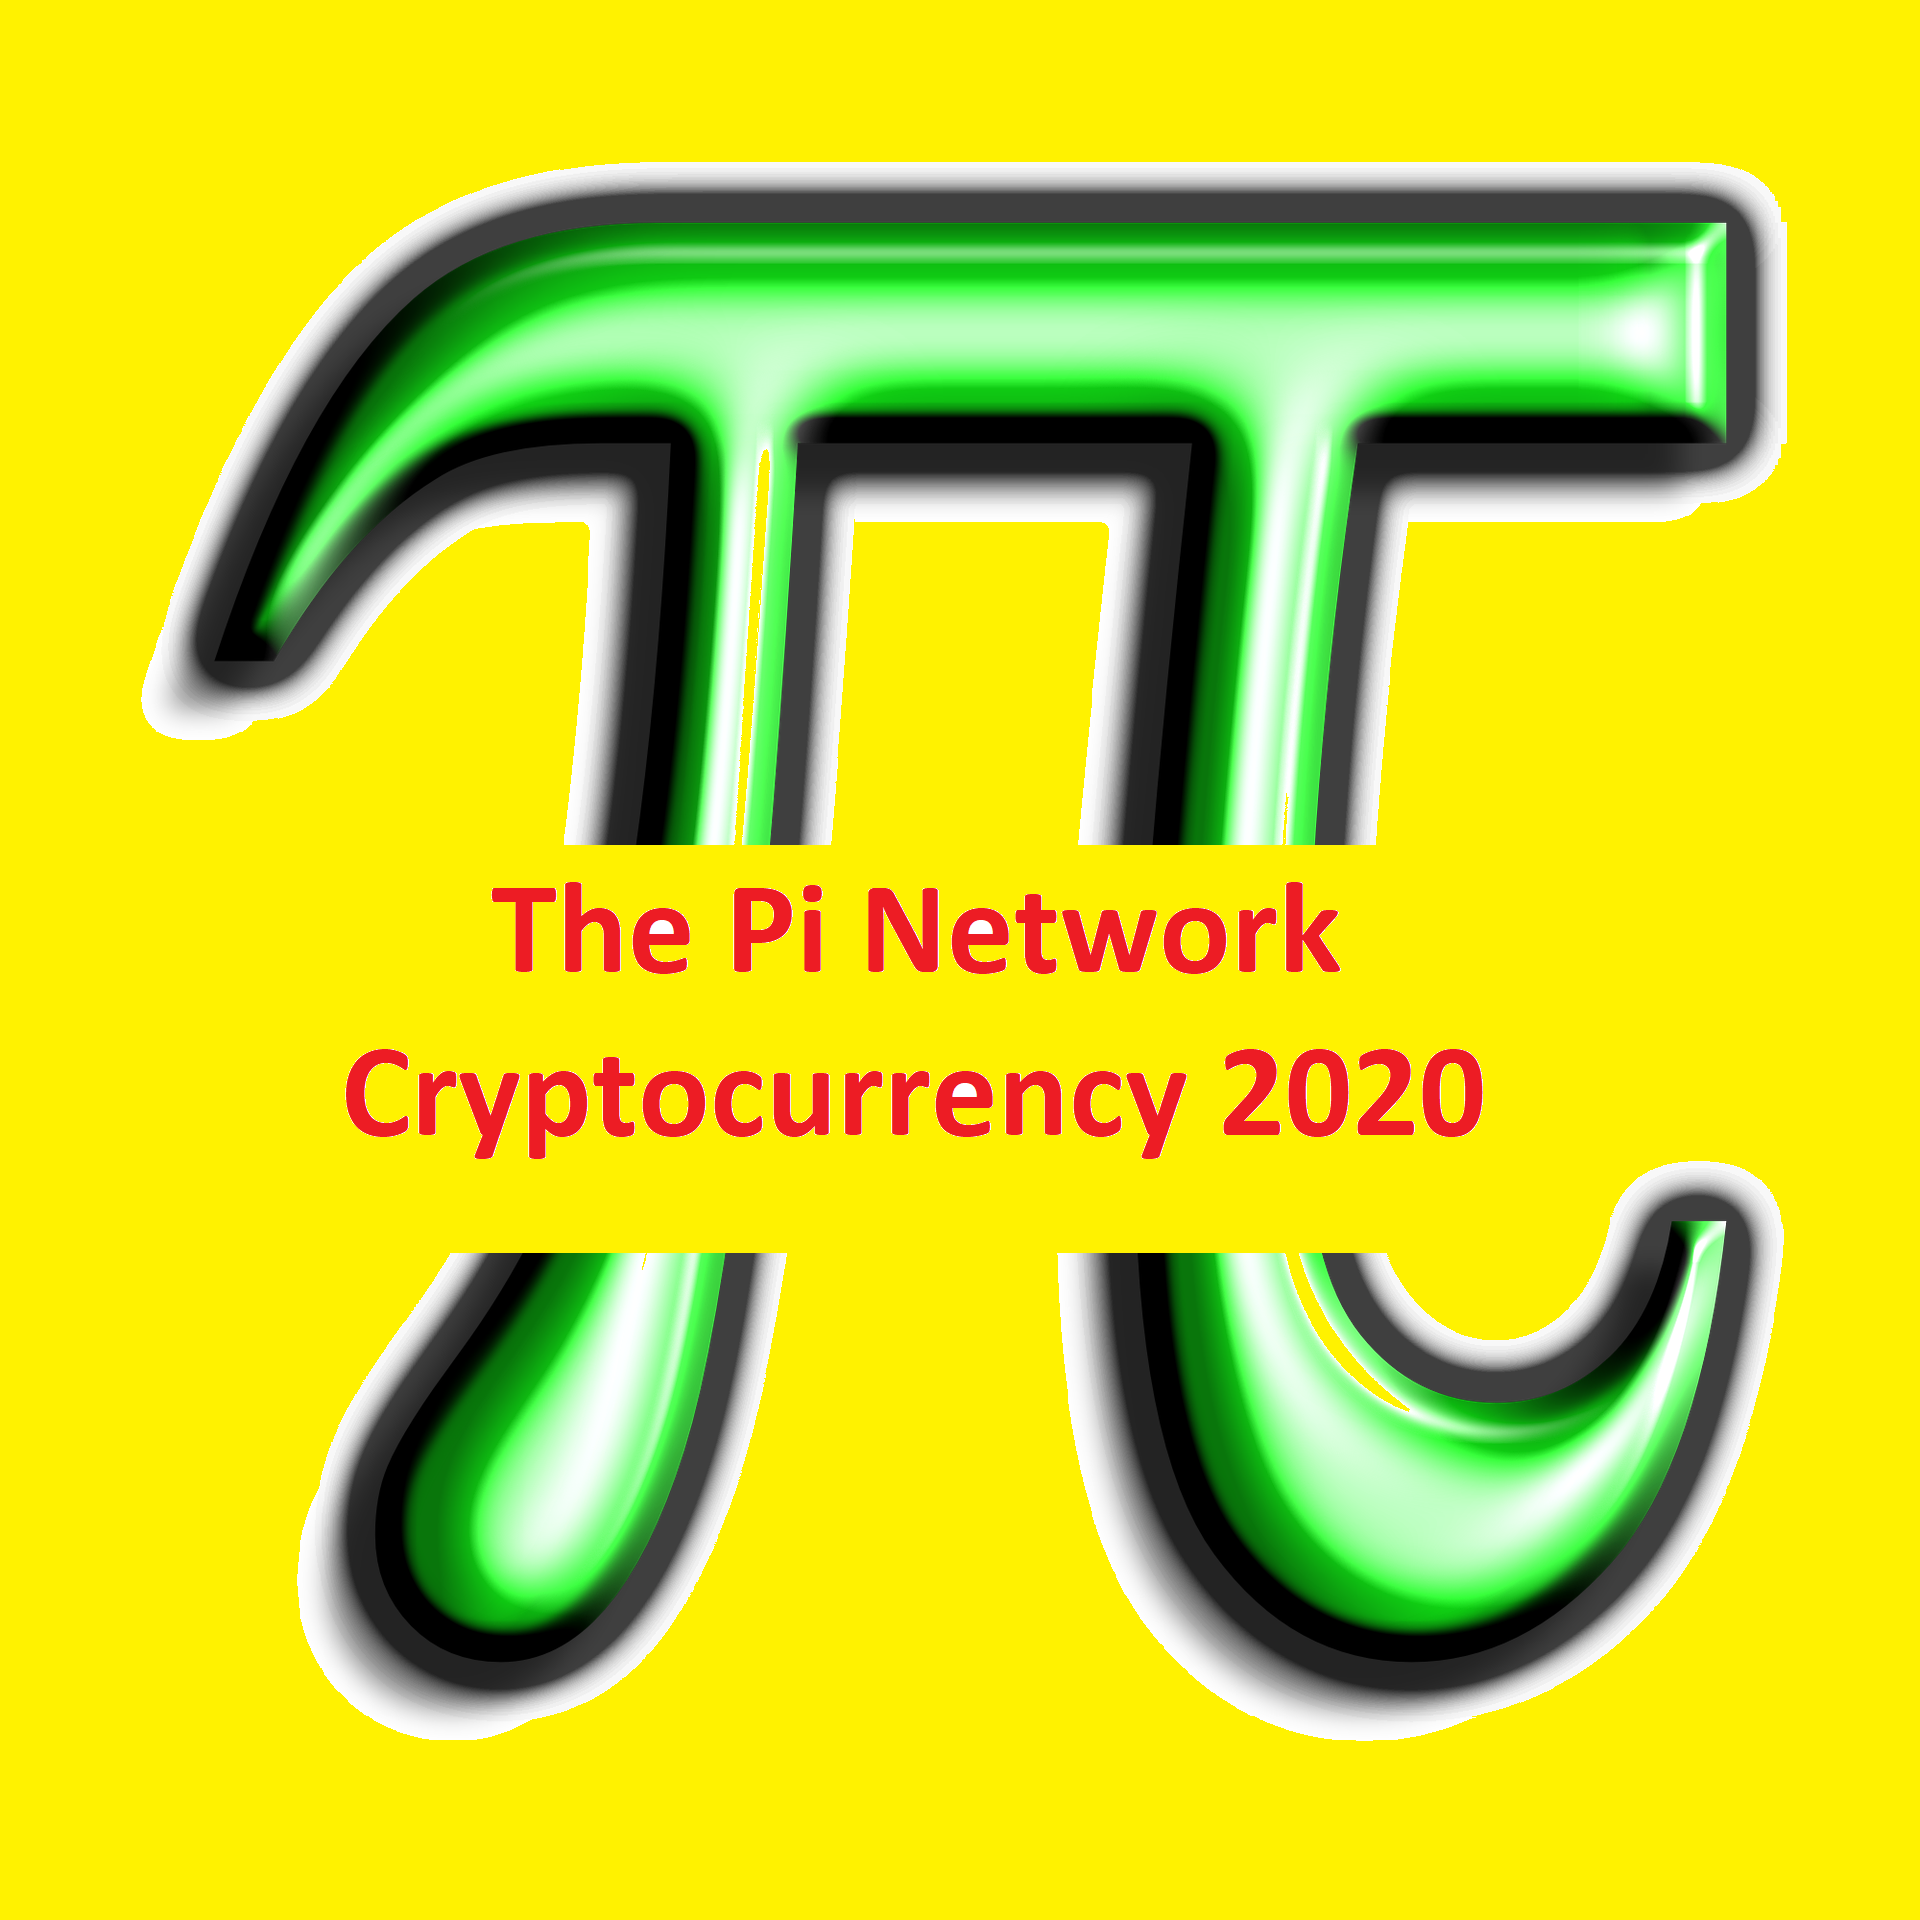 How To Earn Money With The Pi Network Cryptocurrency 2020 in Nepal